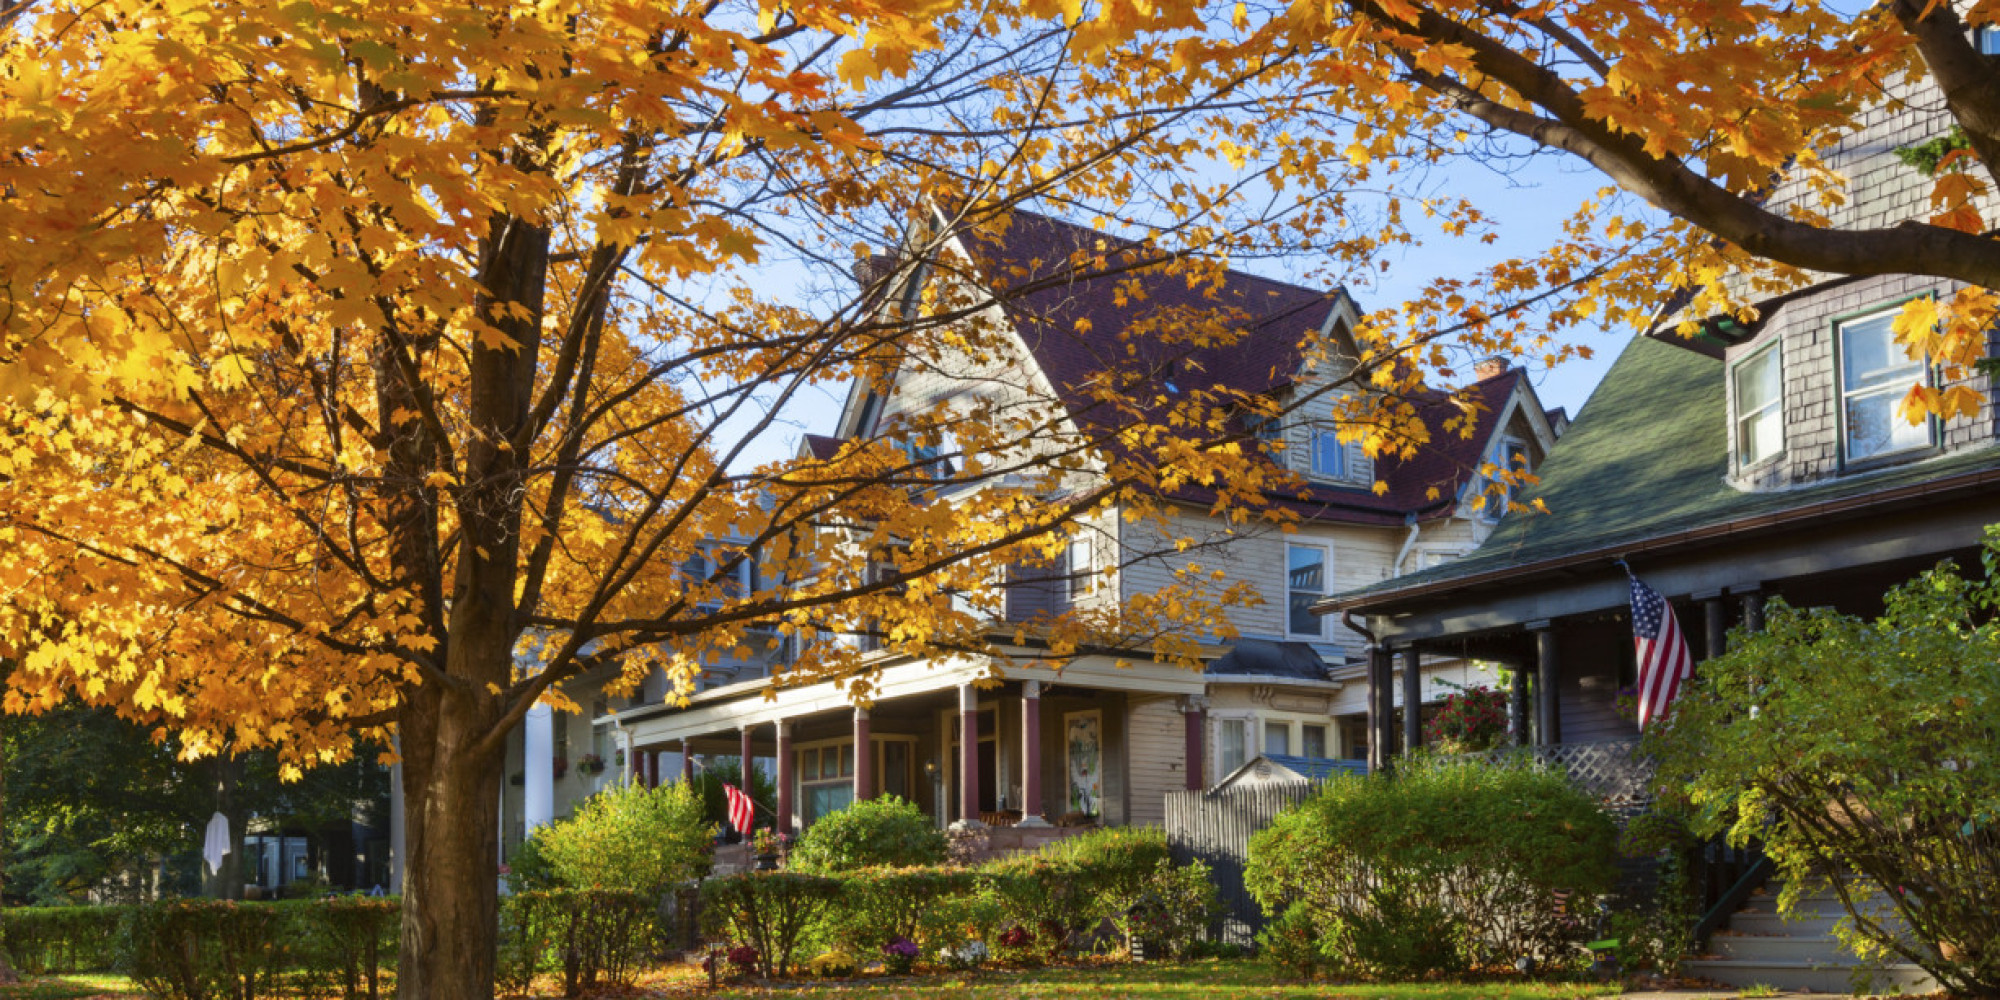 Wallpaper Images Of Fall Trees Lined Lake The 10 Most Beautiful Neighborhoods In America Ranked